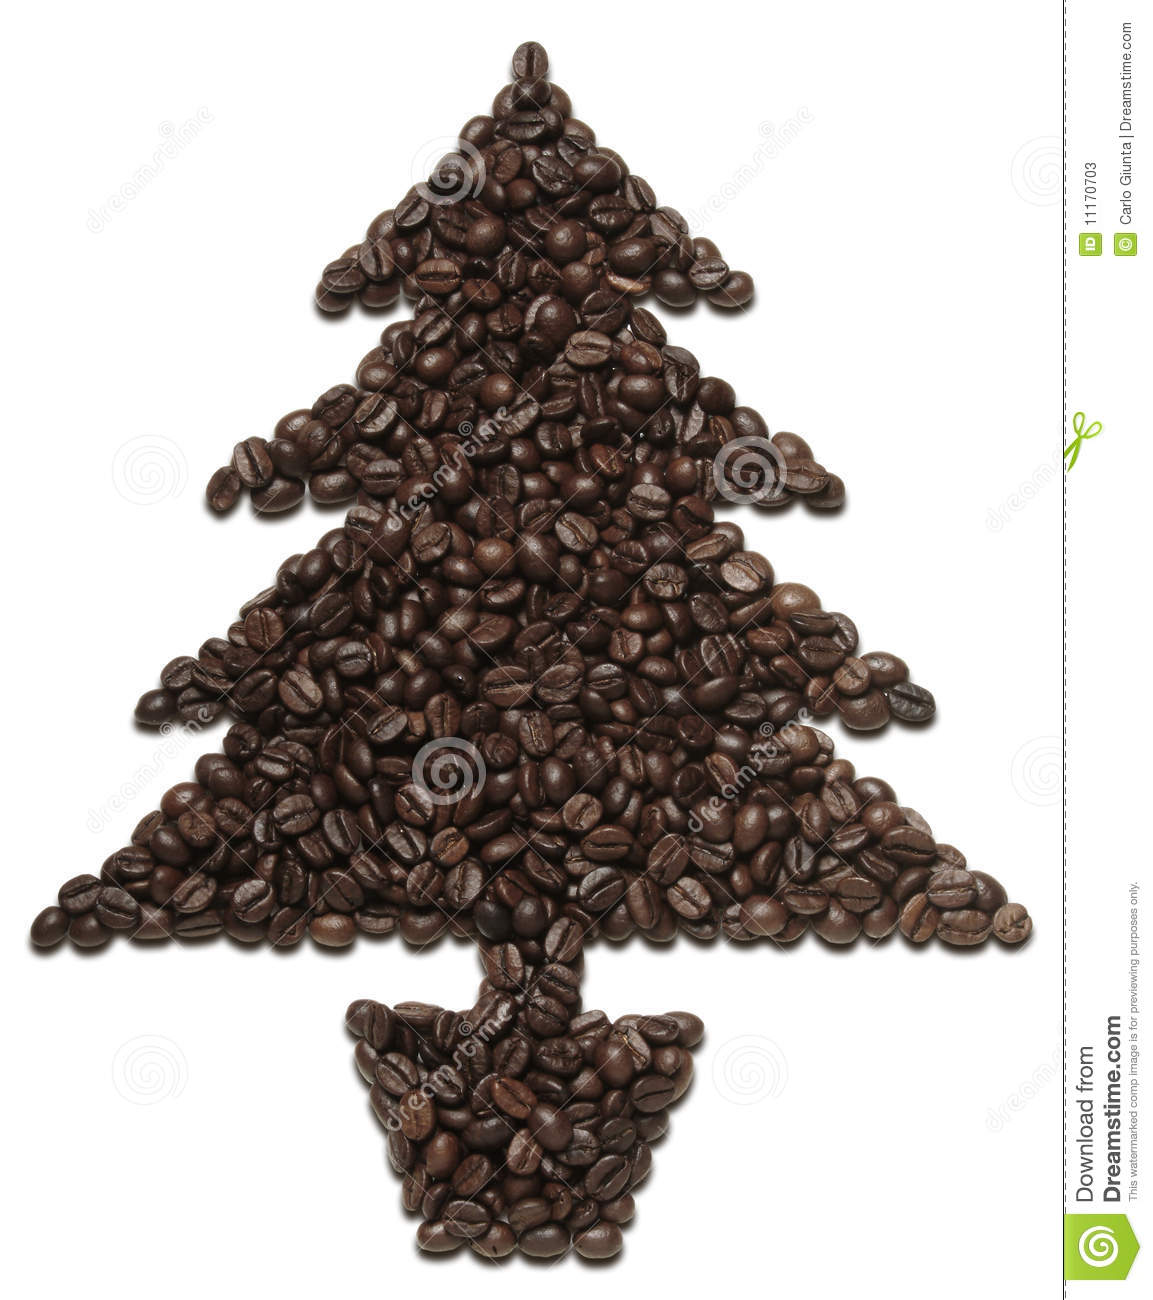 Coffee Christmas Tree.Coffee Christmas Tree Stock Image Image Of Brown Aromatic